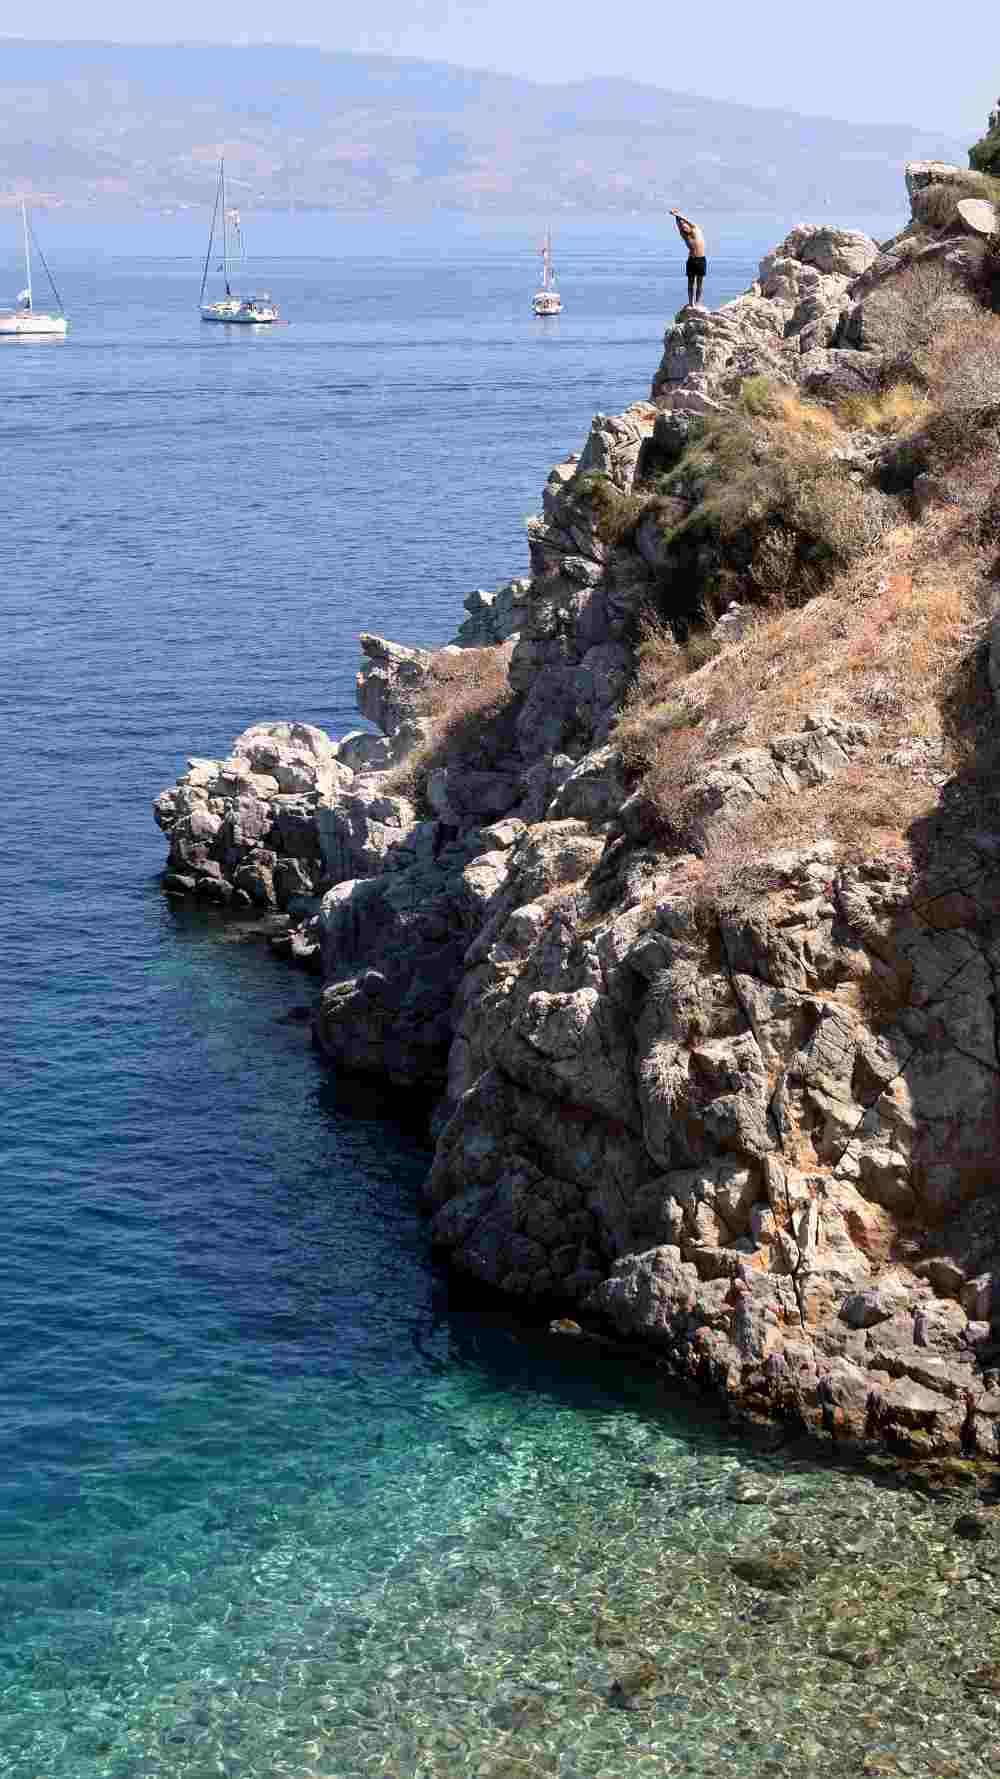 hydra-cliff-diving-aleksander-atmalex-1